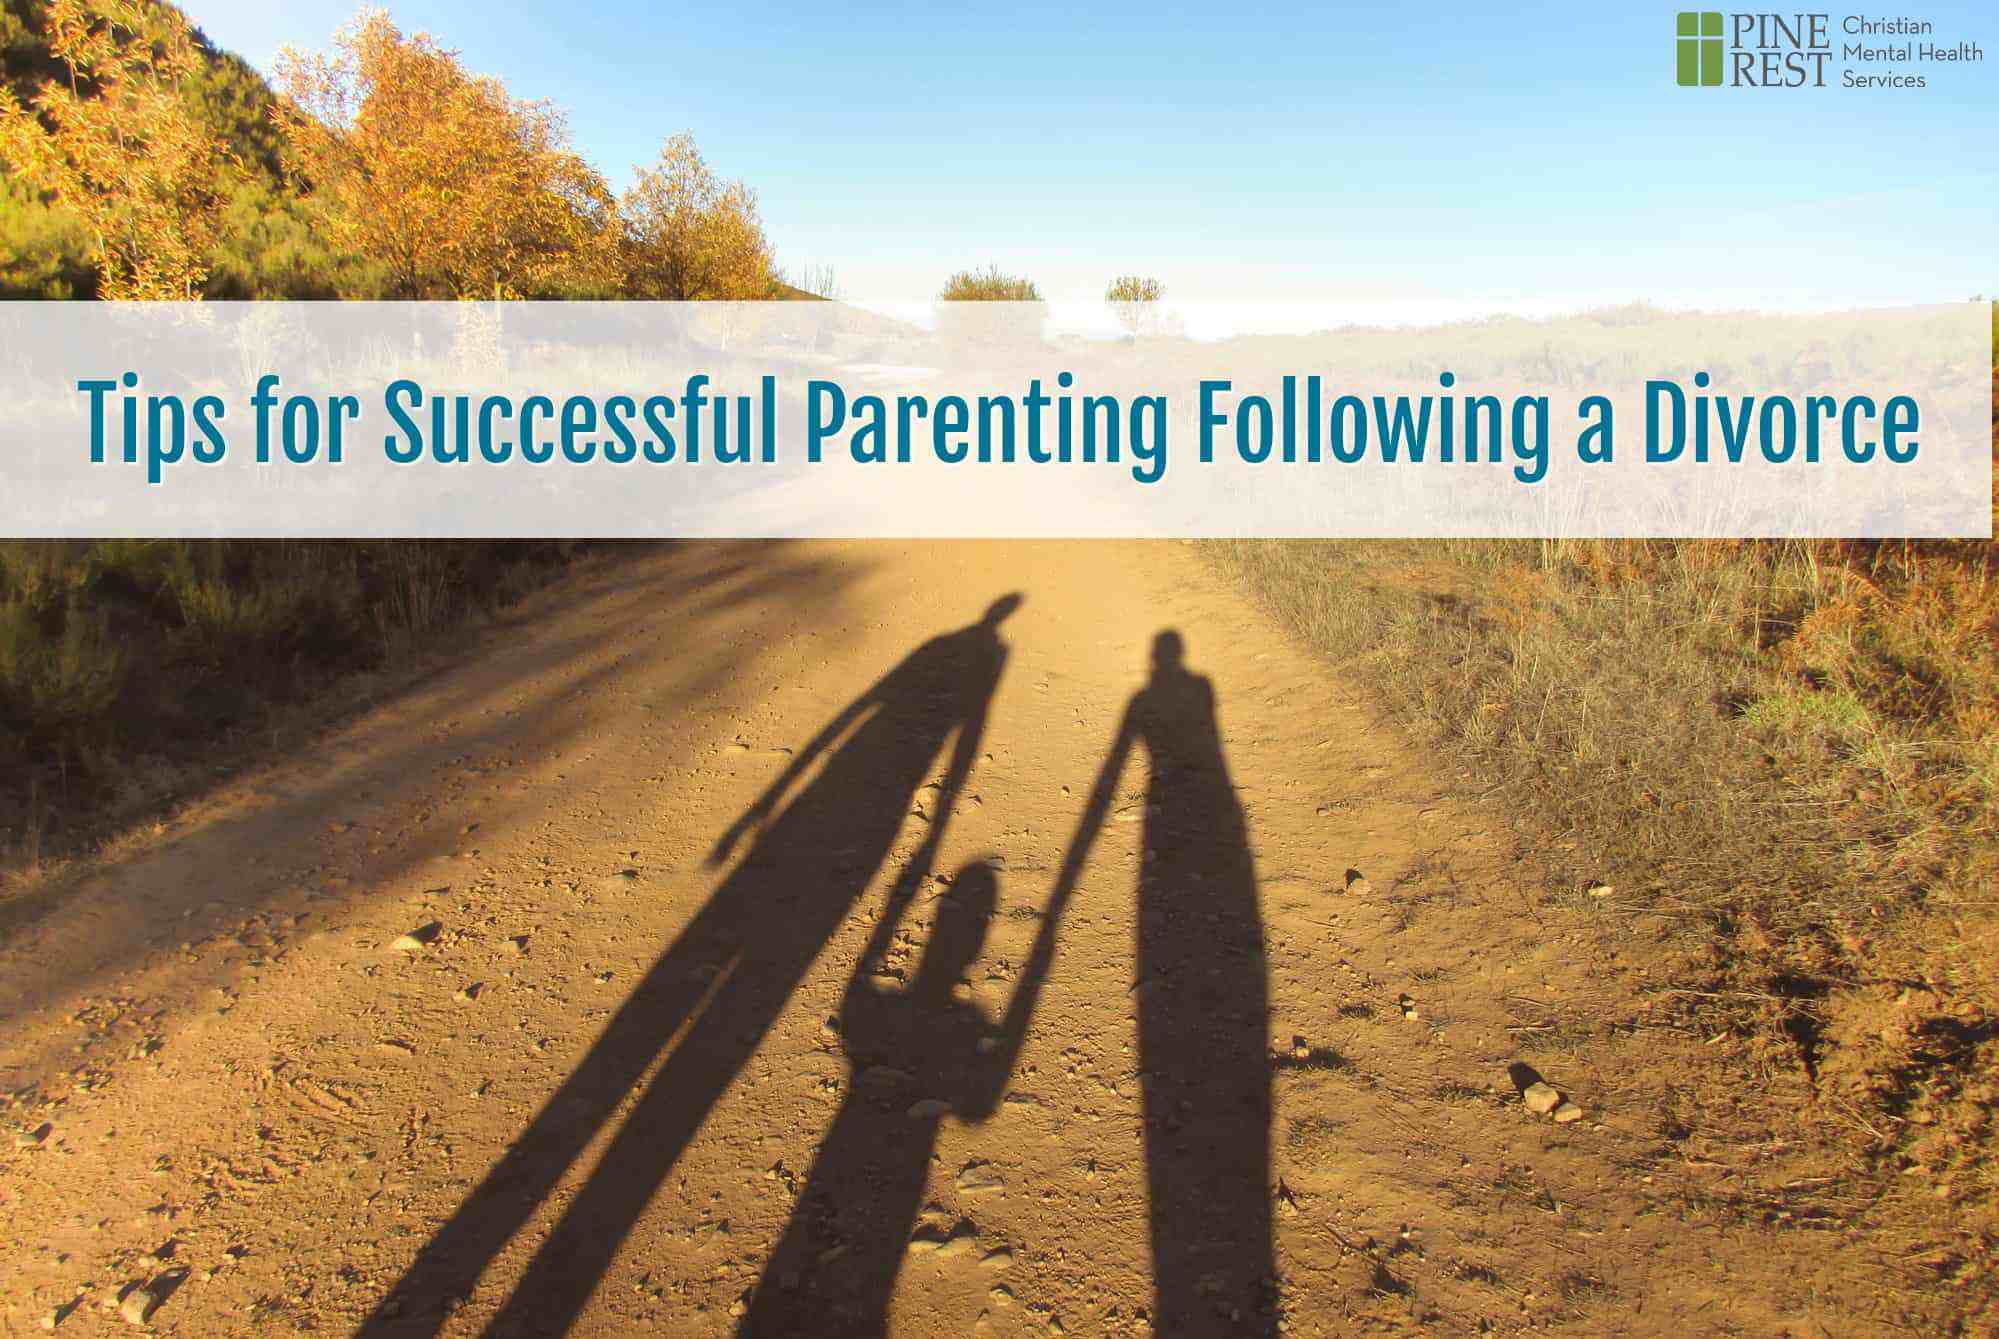 Shadow silhouette of parents holding their child's hands